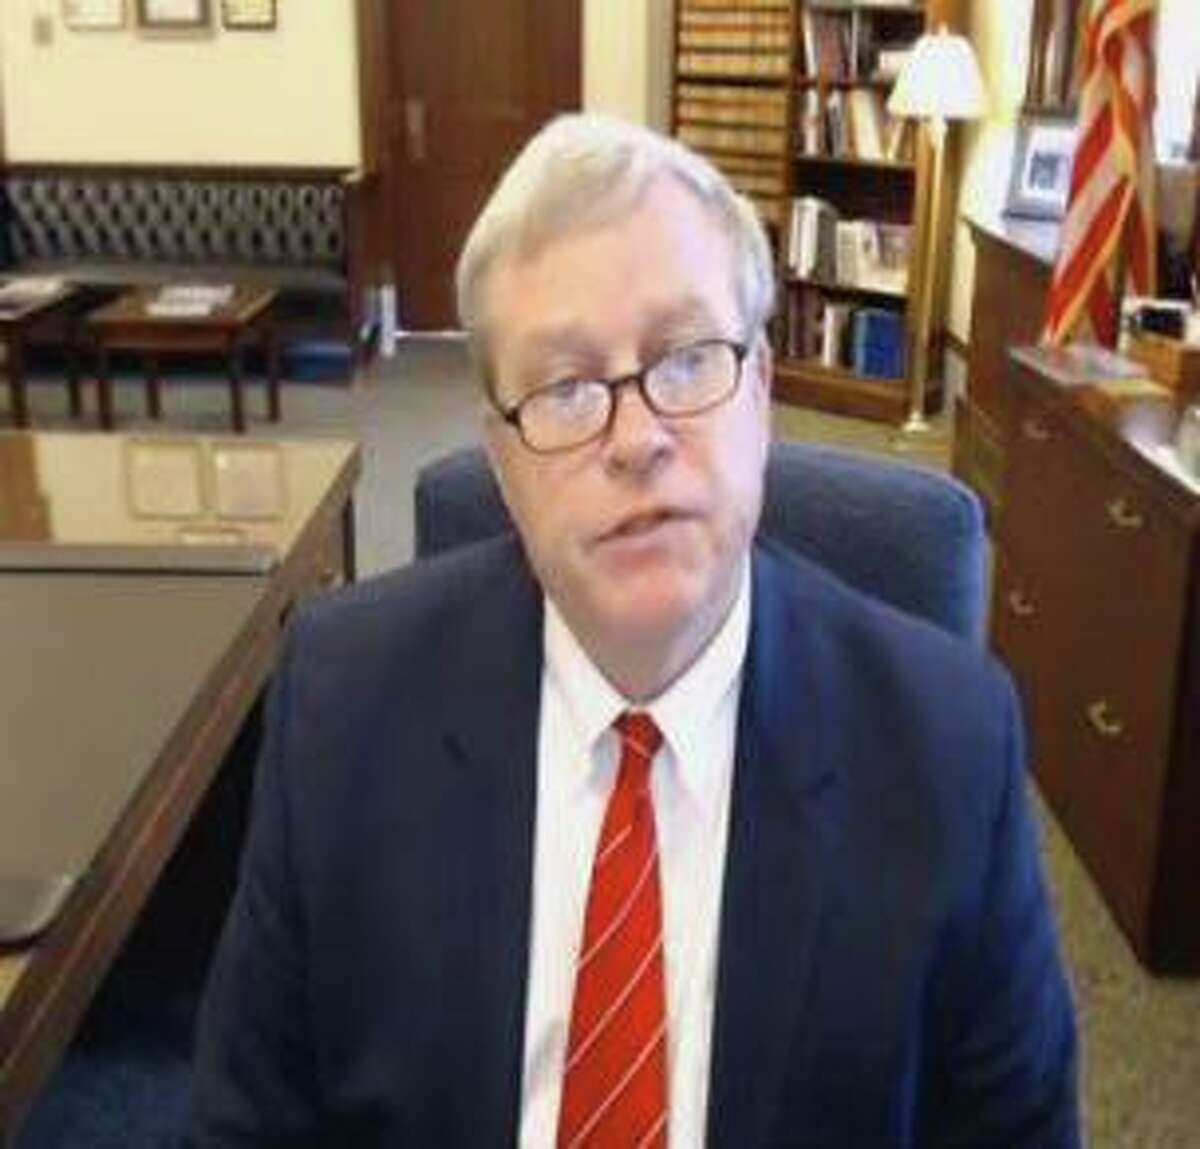 Idaho Attorney General Lawrence Wasden testifies remotely during a House Committee on Oversight and Reform hearing focused on the Sackler family members who own OxyContin maker Purdue Pharma on Tuesday, June 8, 2021.